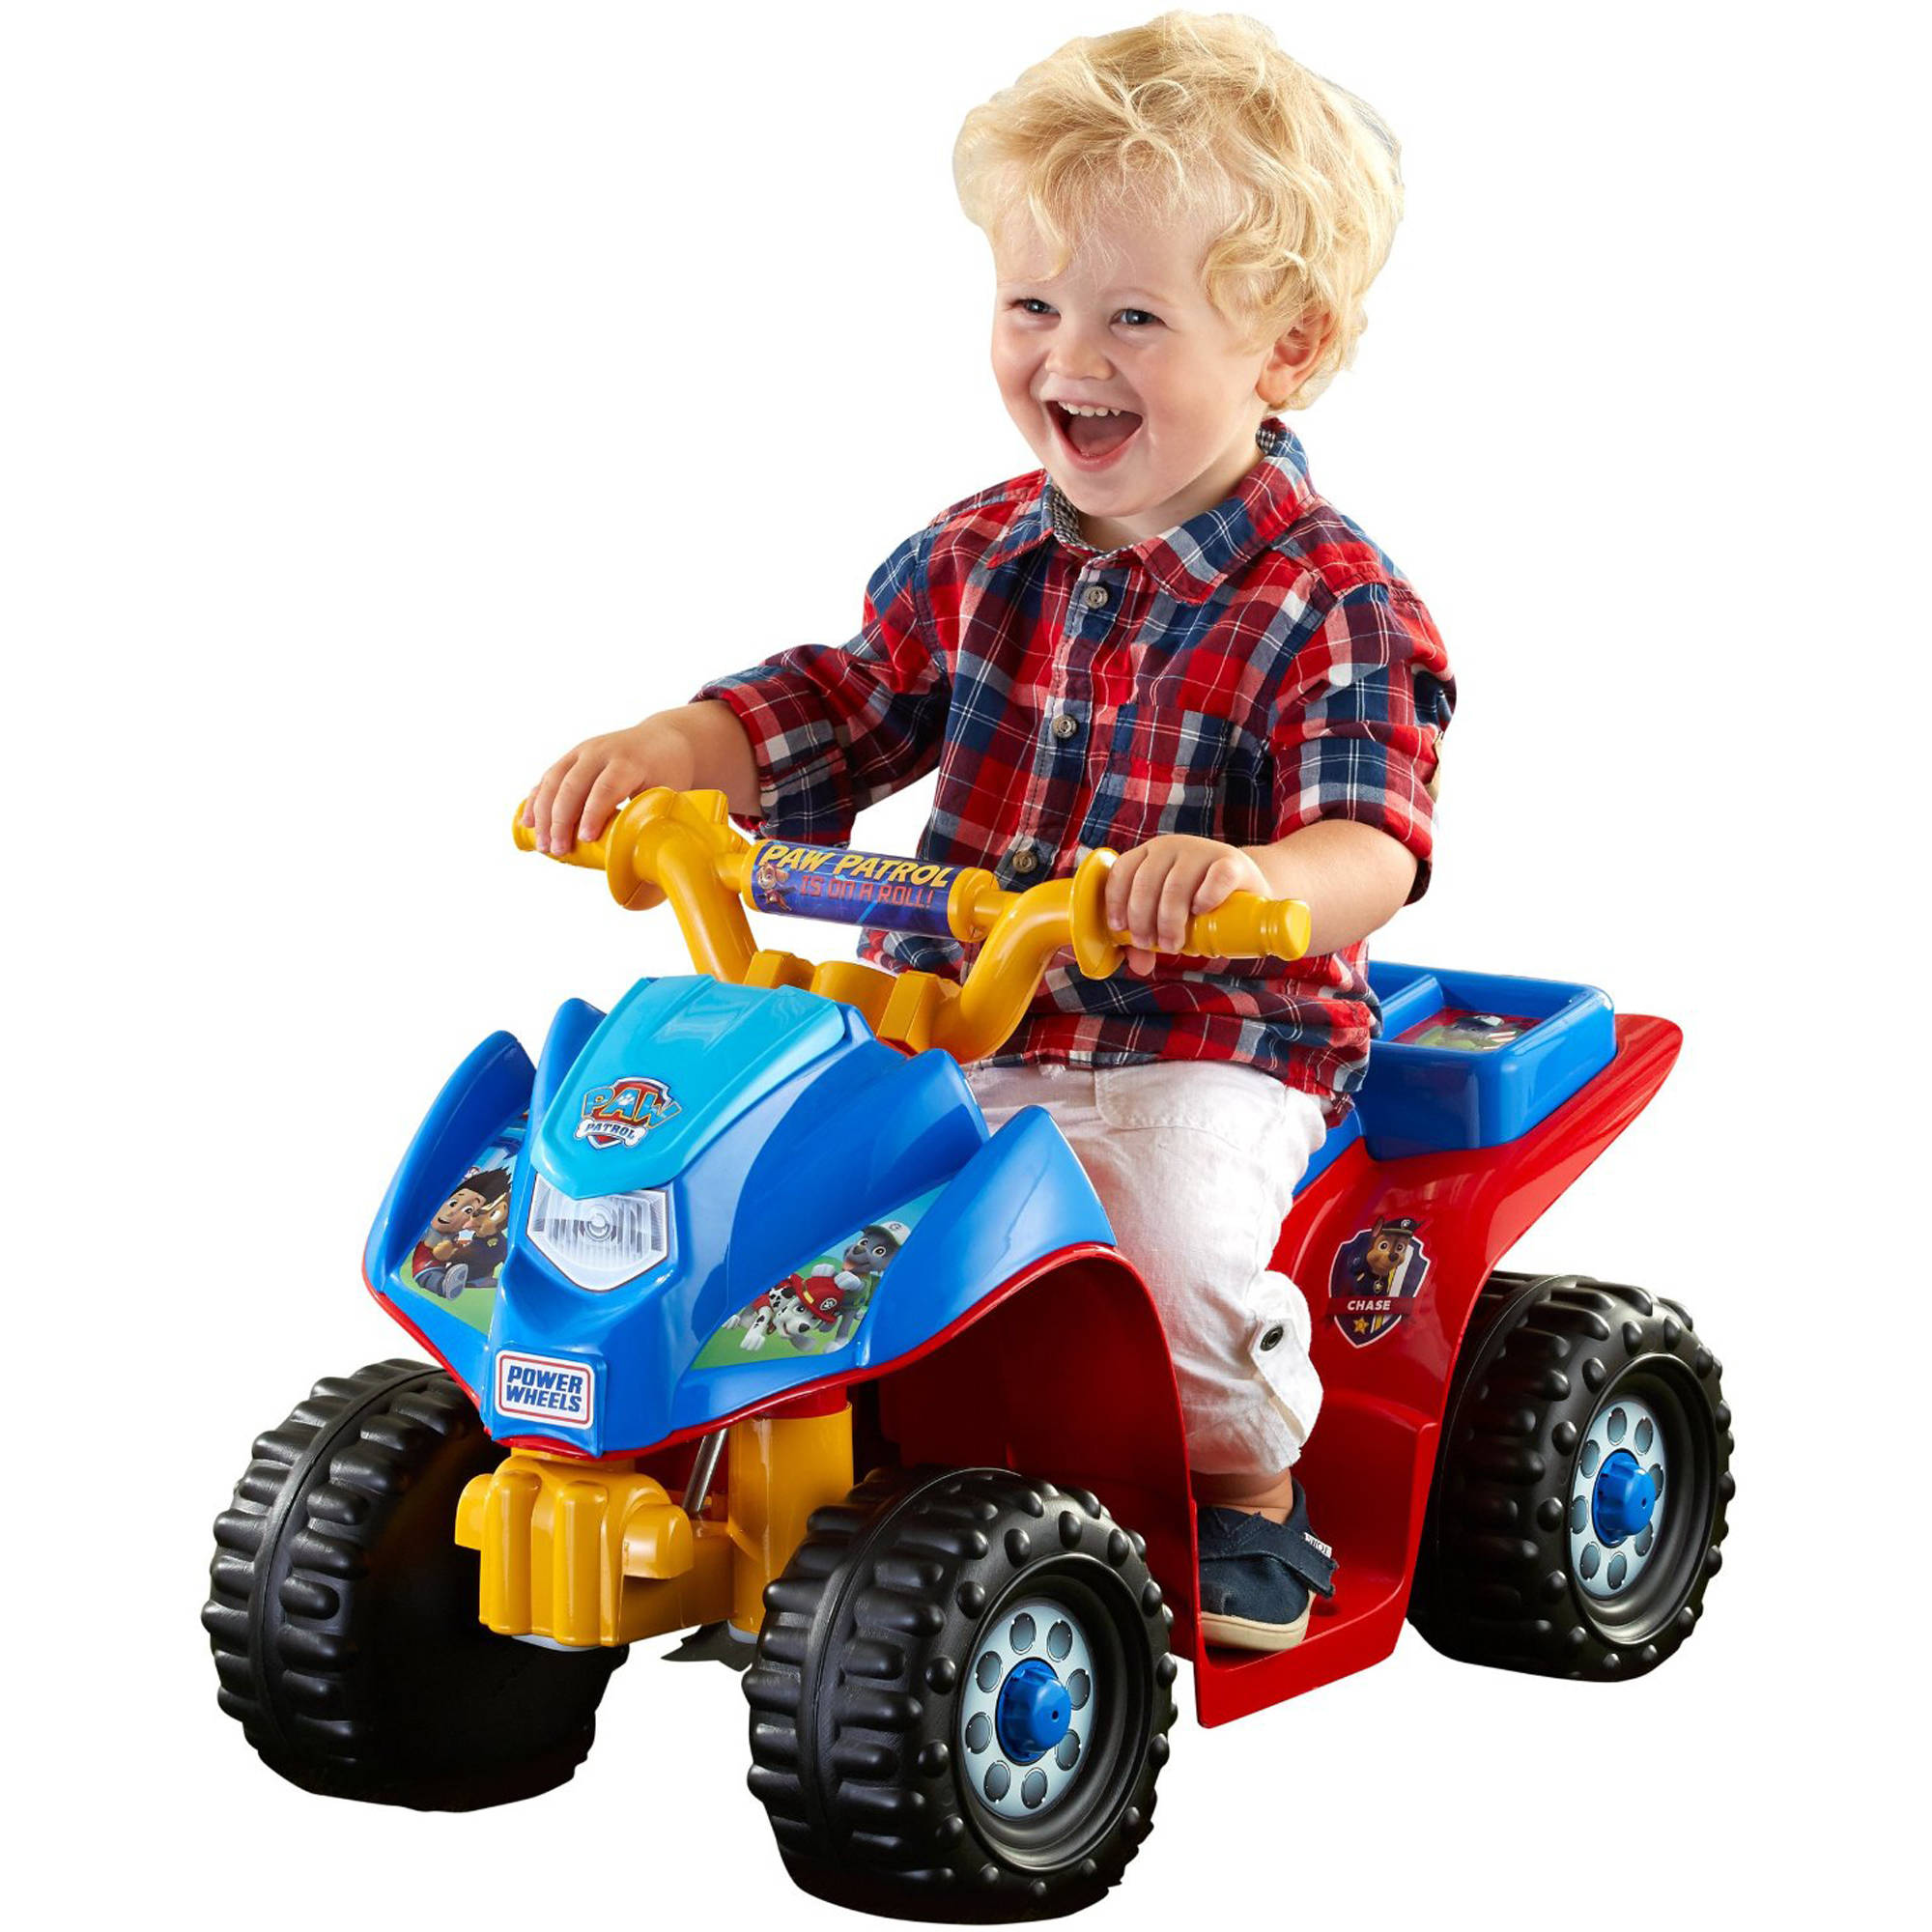 Power Wheels PAW Patrol Lil' Quad